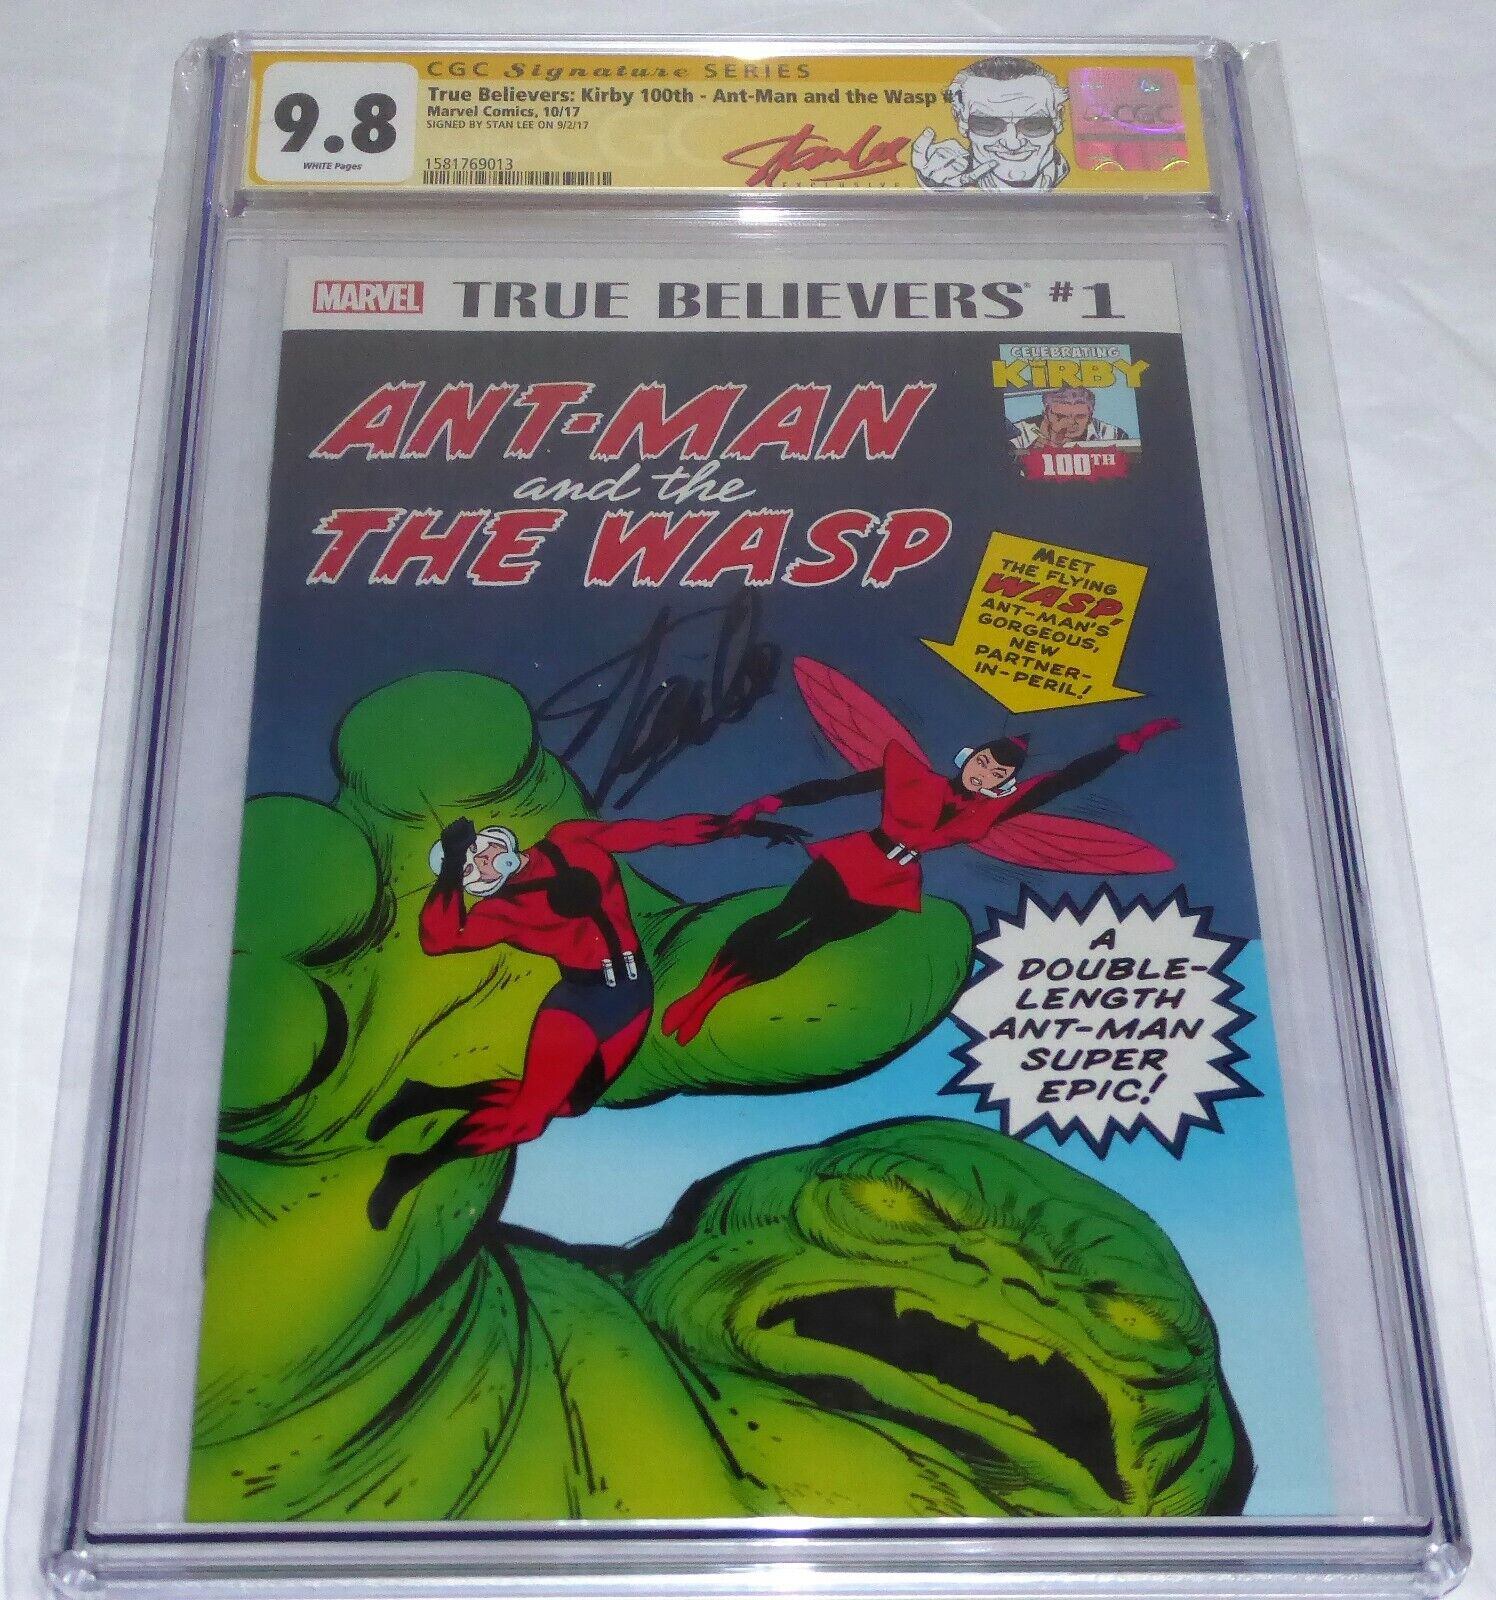 True Believers Kirby 100th Ant-Man Wasp #1 CGC SS 9.8 Autograph STAN LEE Signed